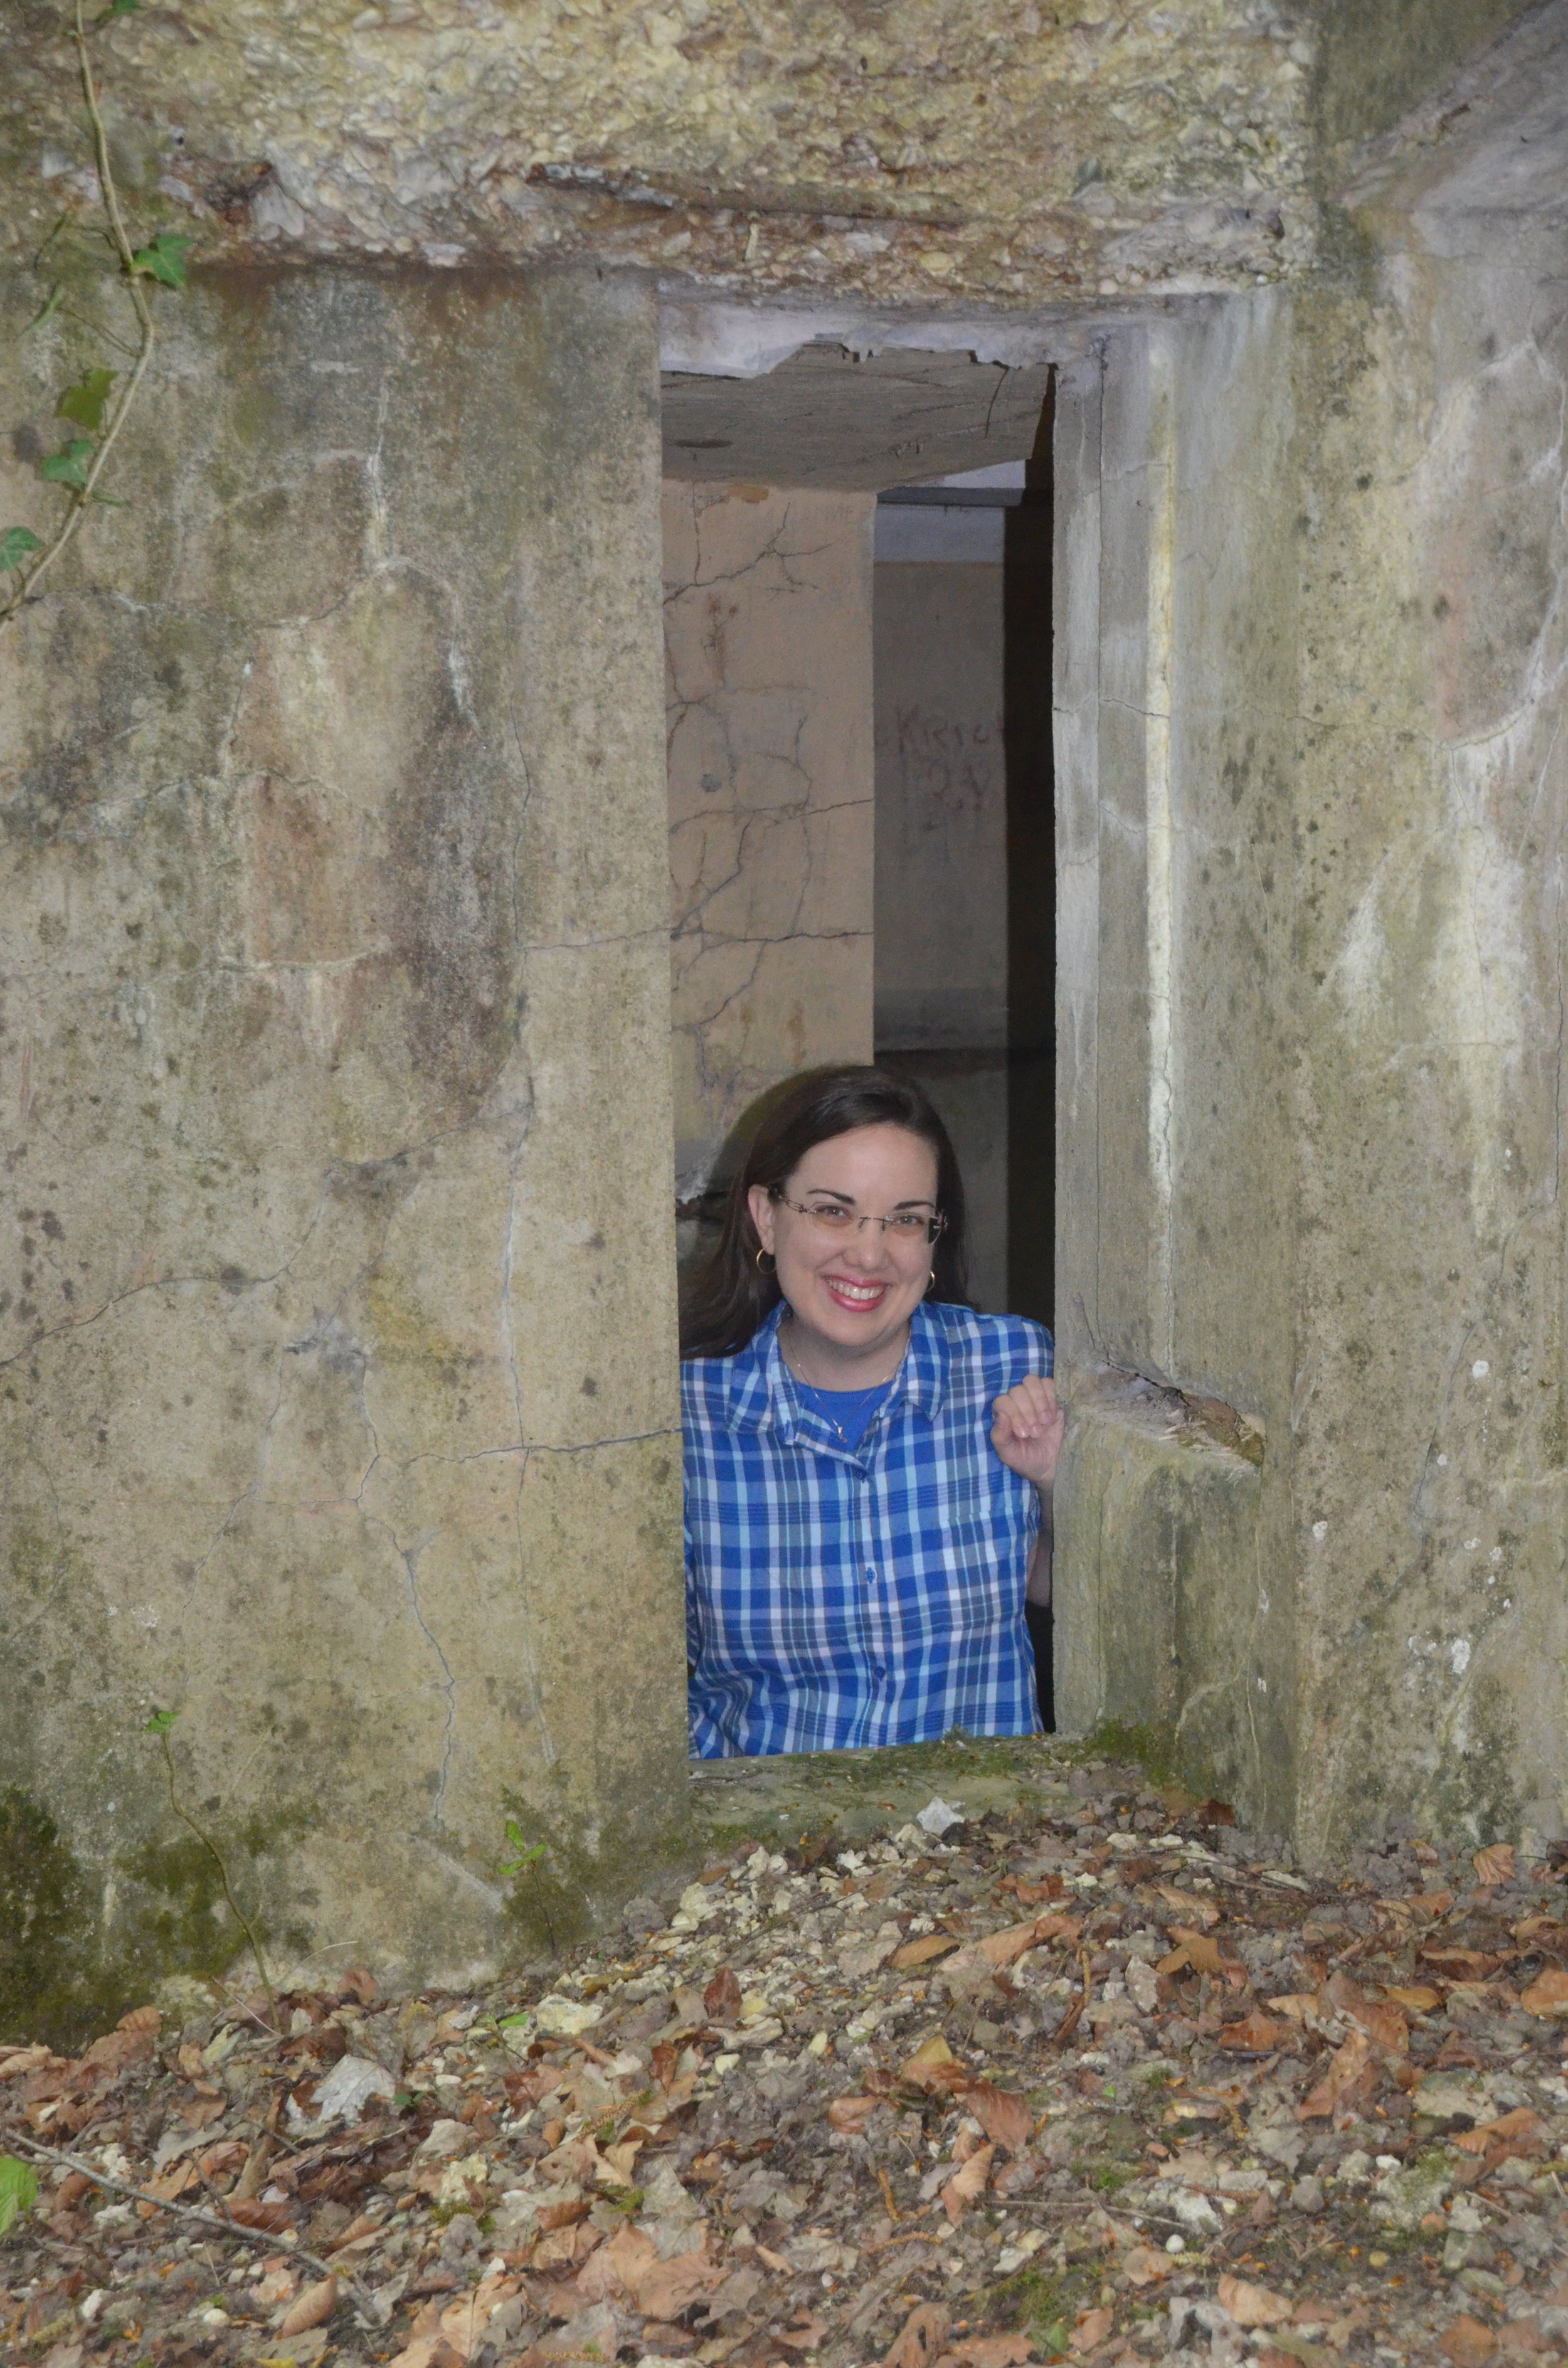 In a WWI German concrete bunker. France. Photo by Tiajuana Cochnauer.